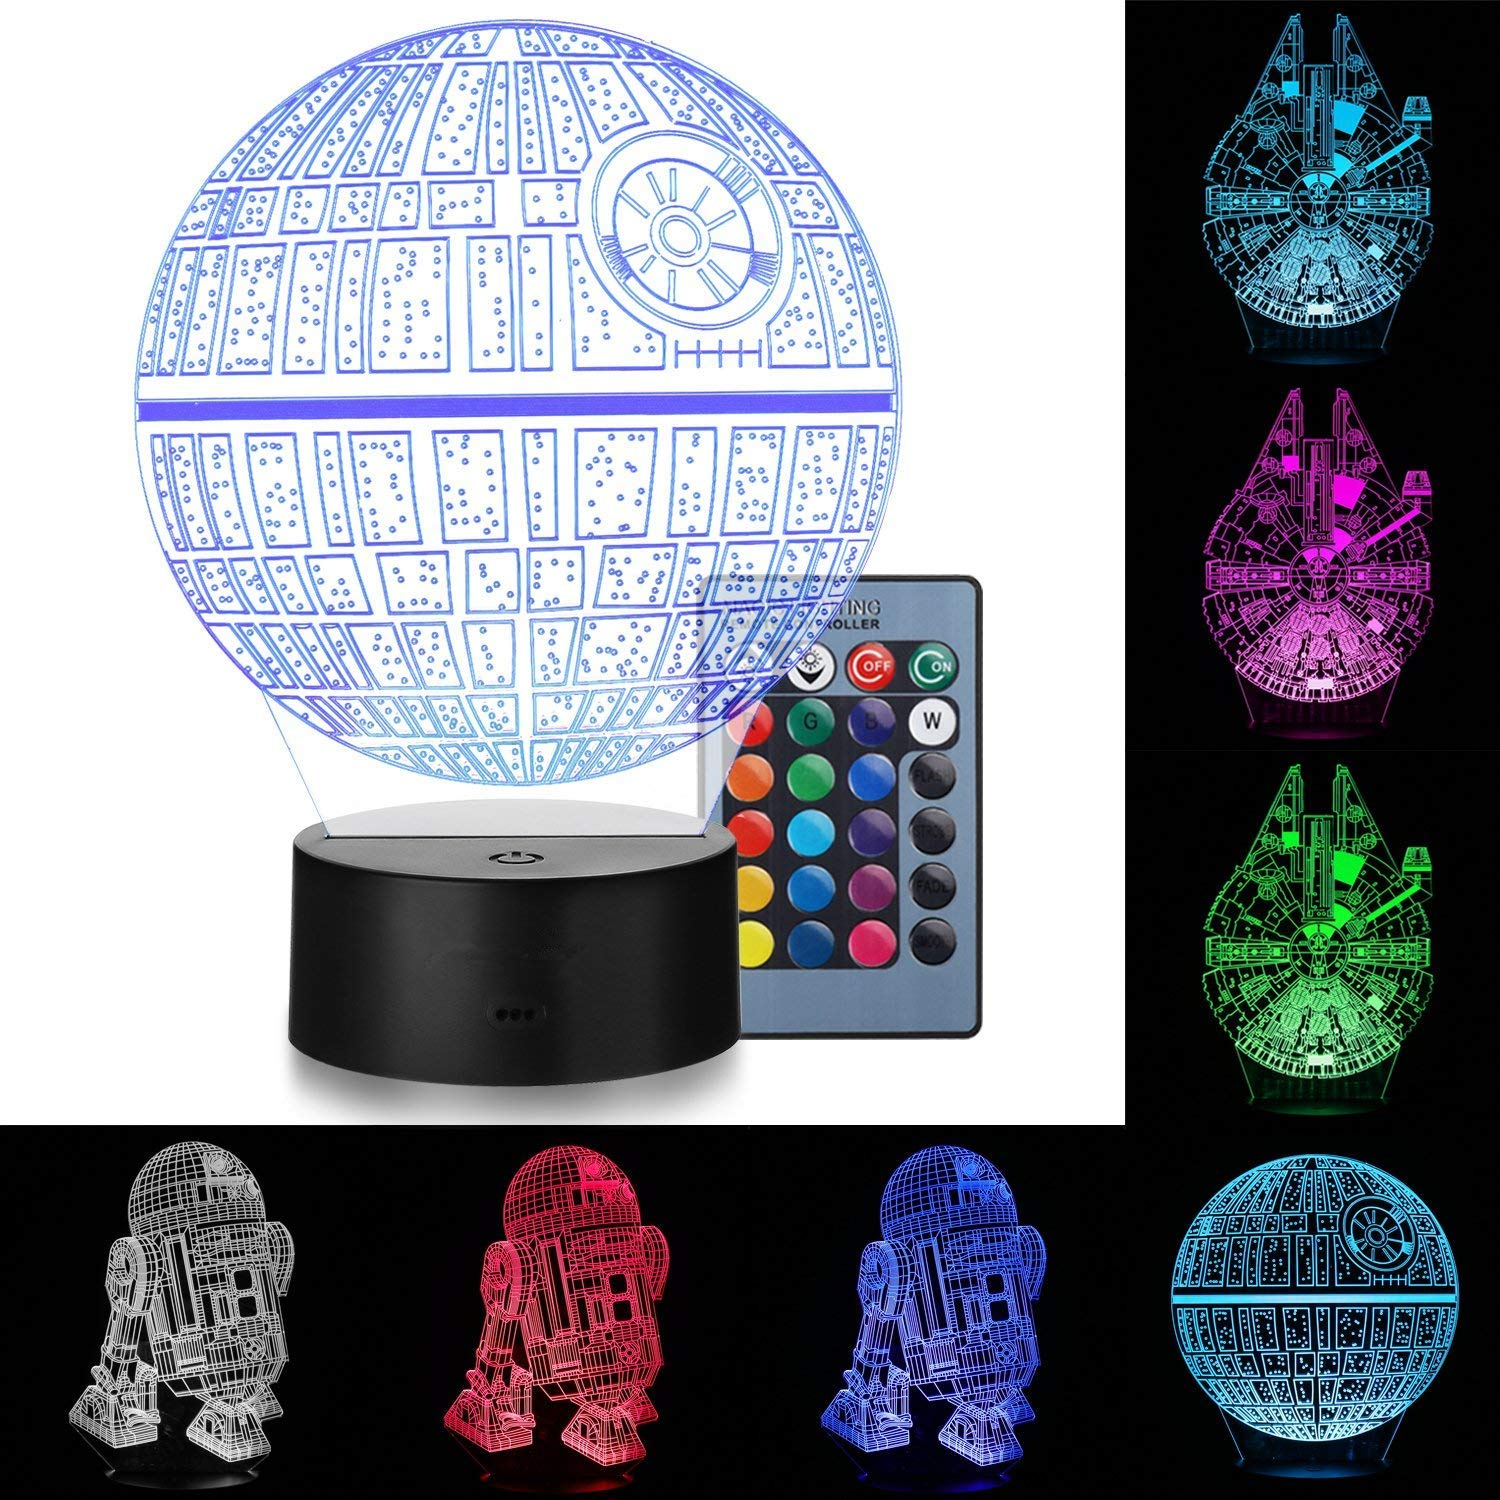 LED 3D Lamp Illusion Star wars Night Light ,star wars decor,four Pattern and 7 Color Change Decor Lamp - Perfect Gifts for Kids CHILDREN Men Women Teens,and Star Wars Fans,Bedroom Decoration lights MOOKOO